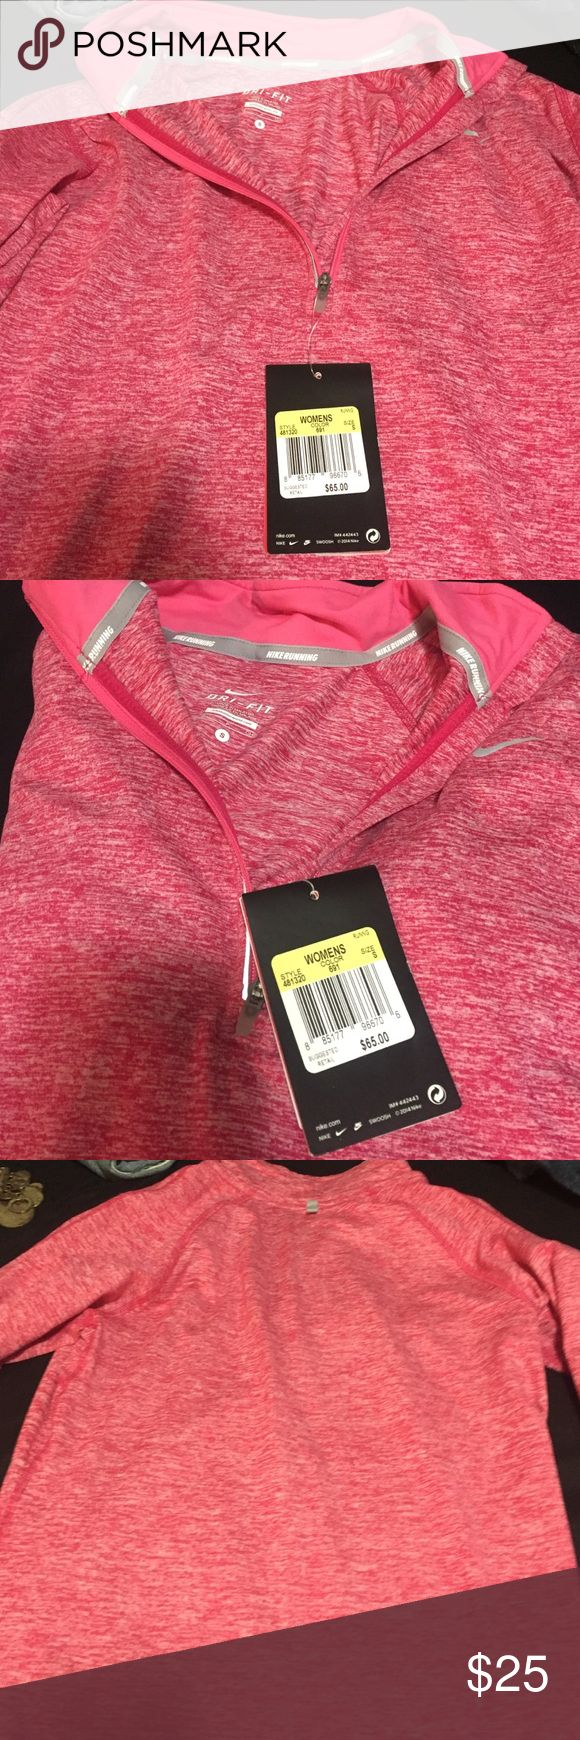 Nike Dri-Fit Running Top | small | dark coral Long sleeve.  Running jacket.  Light but definitely keeps you warm in the cooler fall months.  Perfect for a morning jog.  Size small.  Brand NEW with tags! Price tag attached.  Bought it for $60 but tag says $65! I'm pricing way below what it's worth.  No low ballets plz.  No trades.  Looking to sell.  Need more room for other items! Nike Tops Sweatshirts & Hoodies